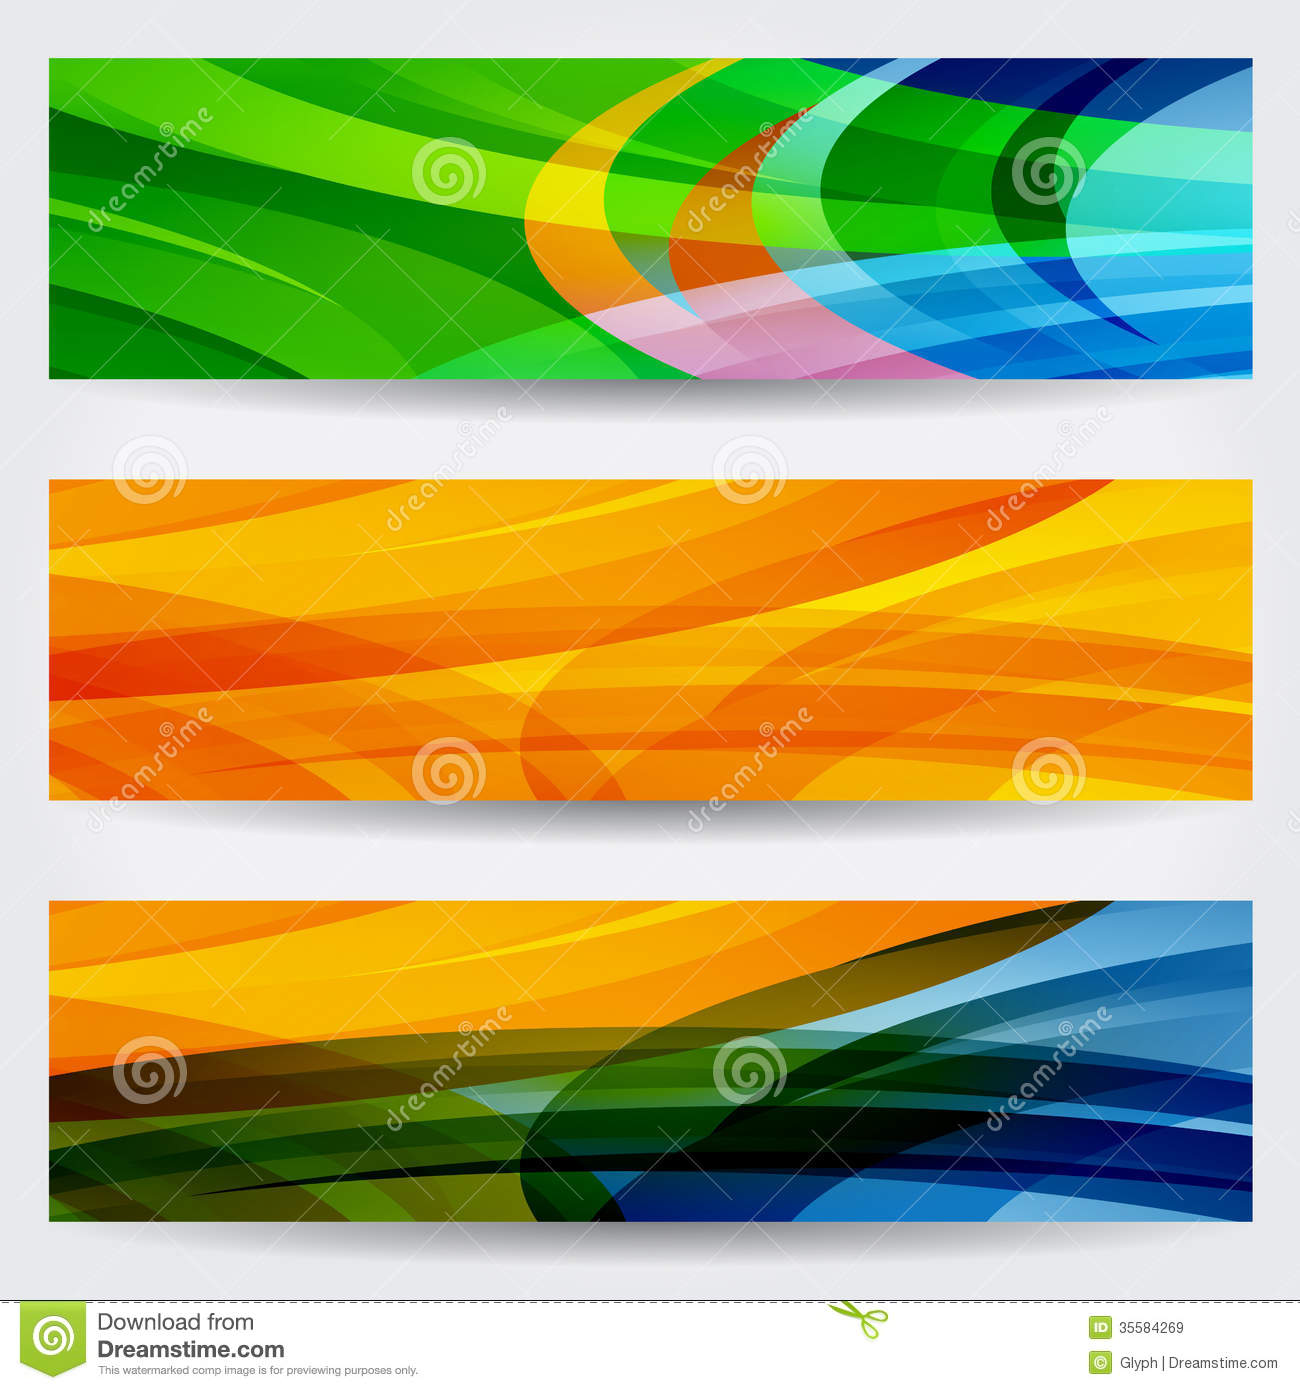 ... Colorful Web Banners Royalty Free Stock Images - Image: 35584269: www.dreamstime.com/royalty-free-stock-images-set-three-abstract...